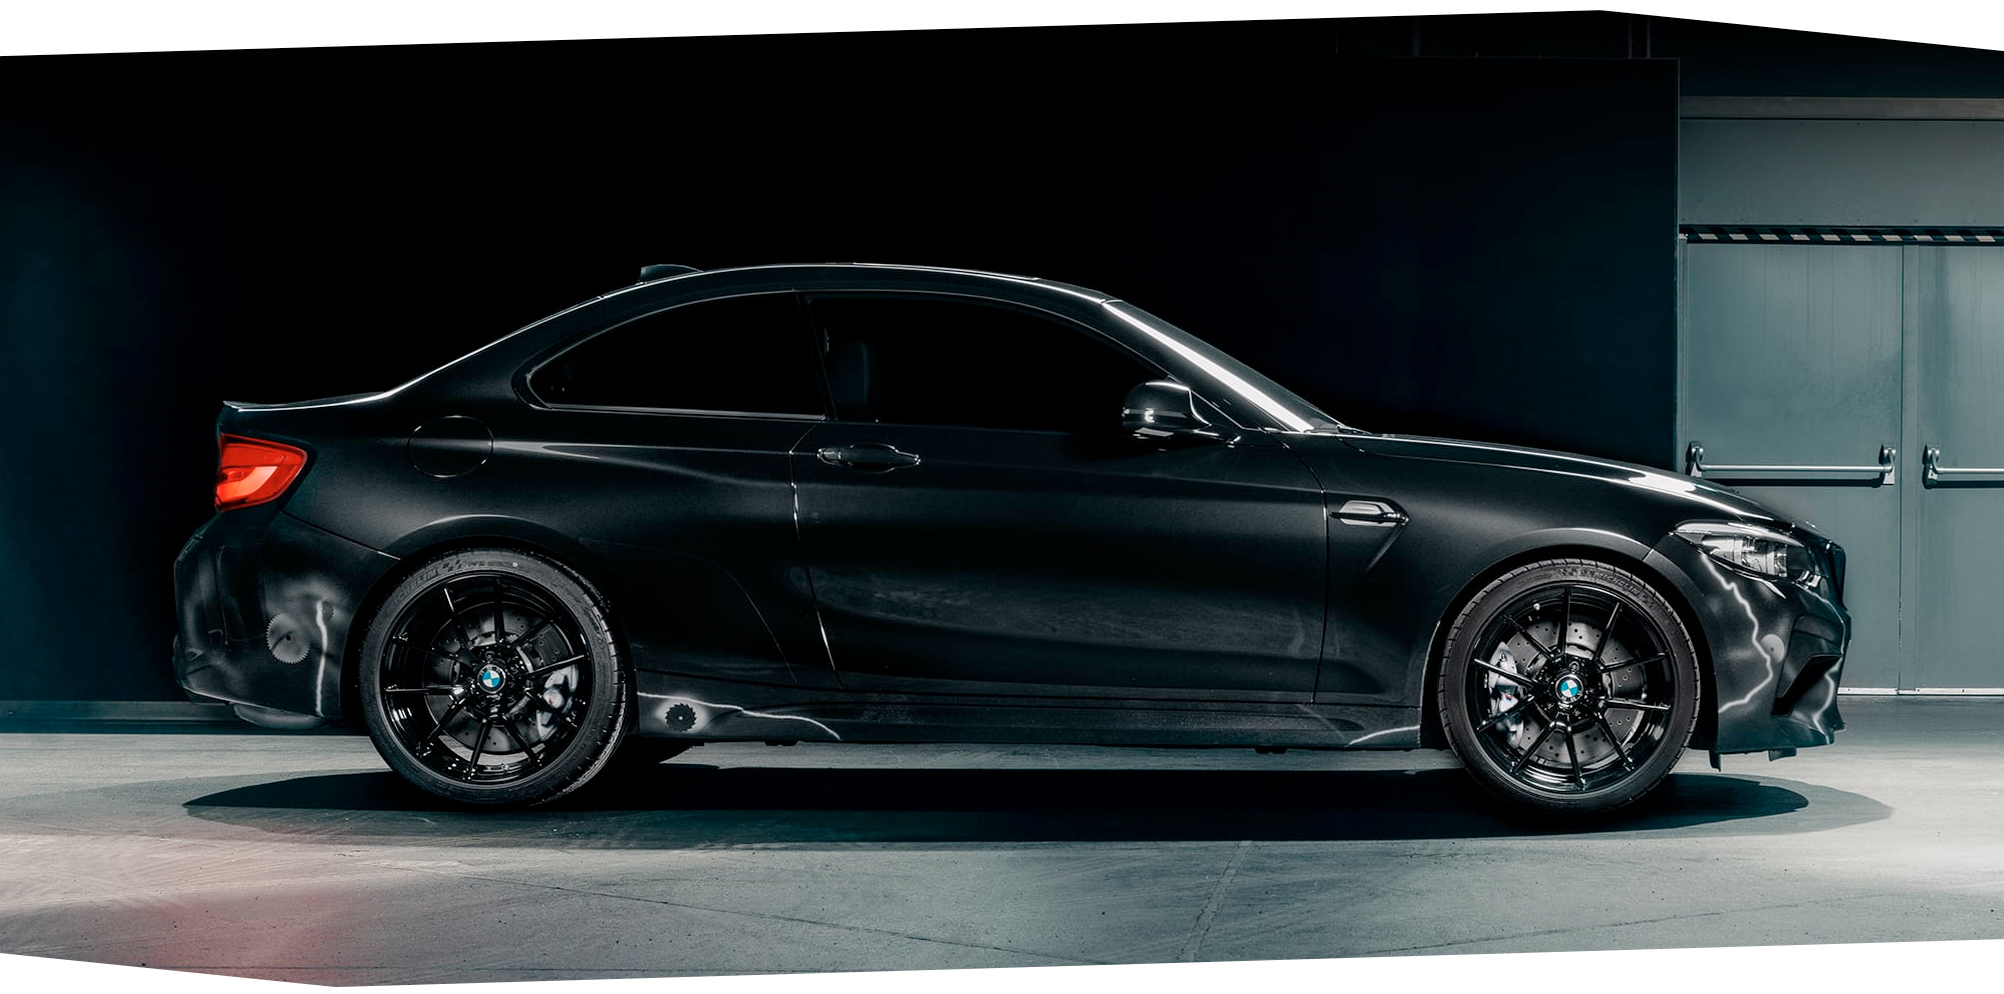 BMW M2 Edition by Futura 2000 - Profile